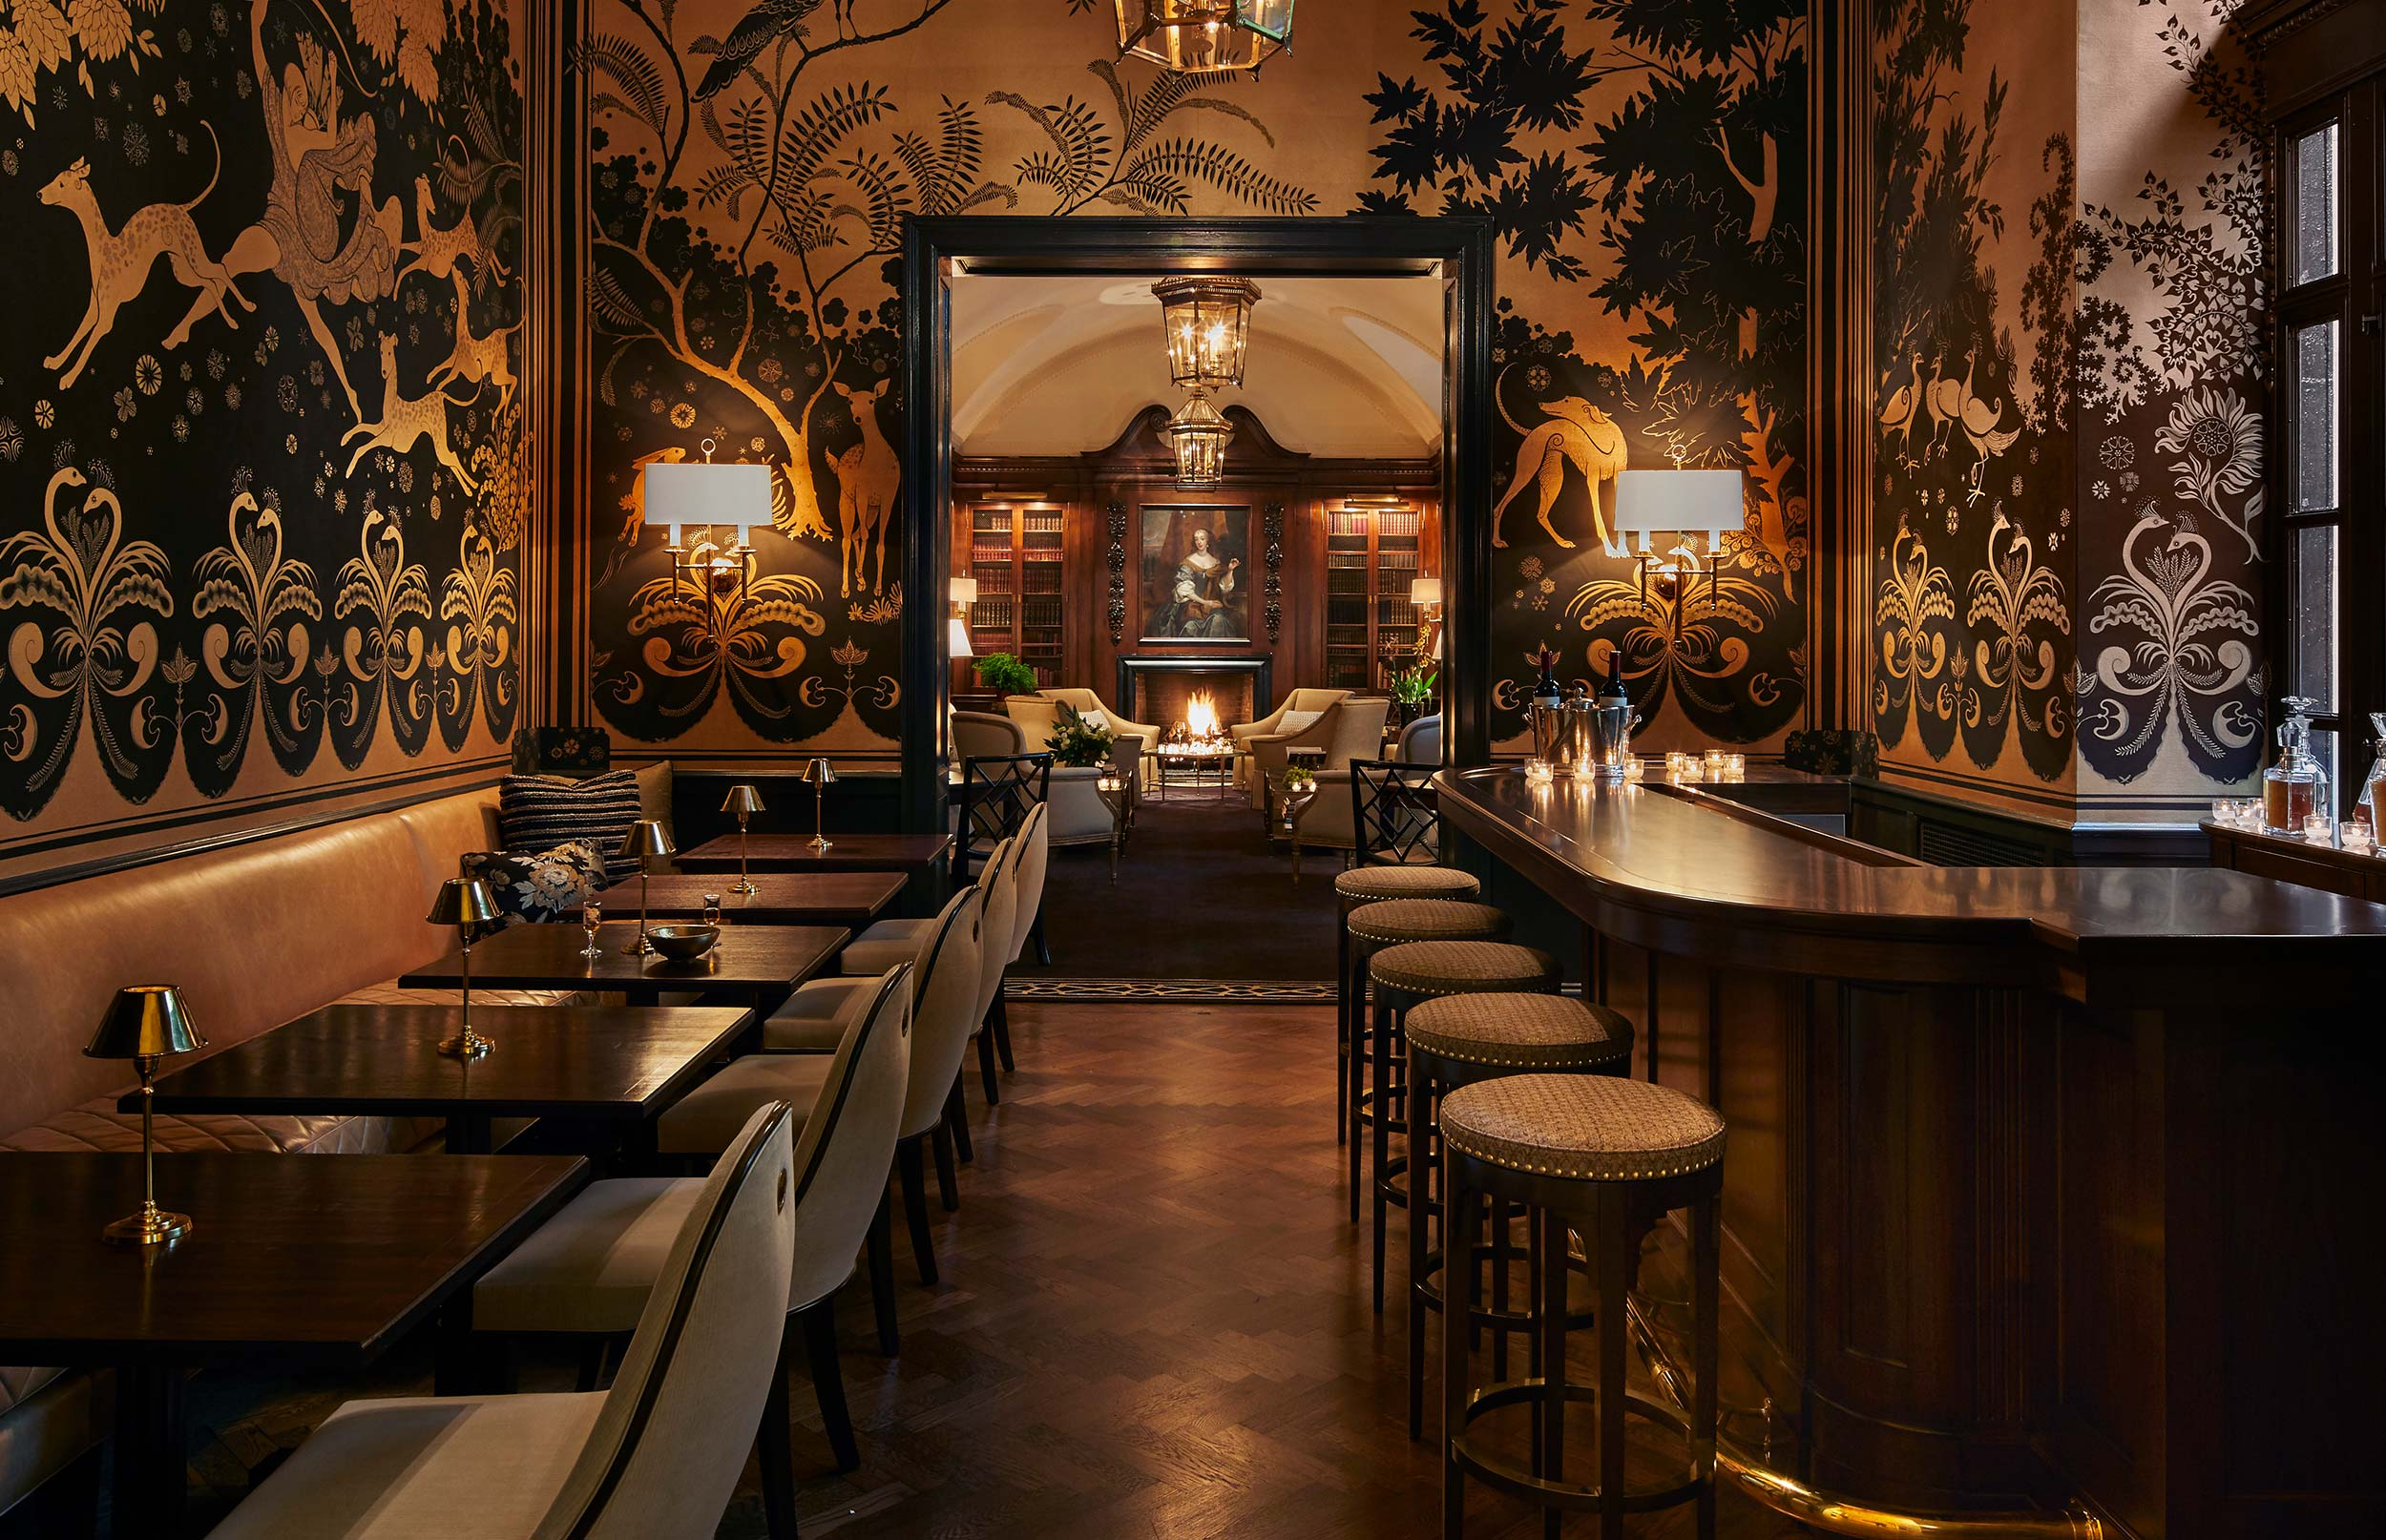 custom furniture: banquette, dining chairs, bar stools & decorative throw pillows  Interior Design: Craig & Company for Women's Athletic Club, Chicago